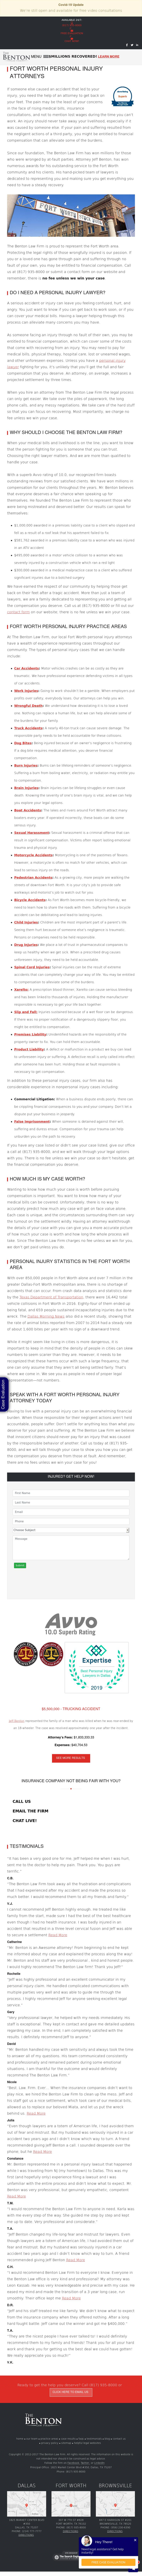 The Benton Law Firm - Fort Worth TX Lawyers